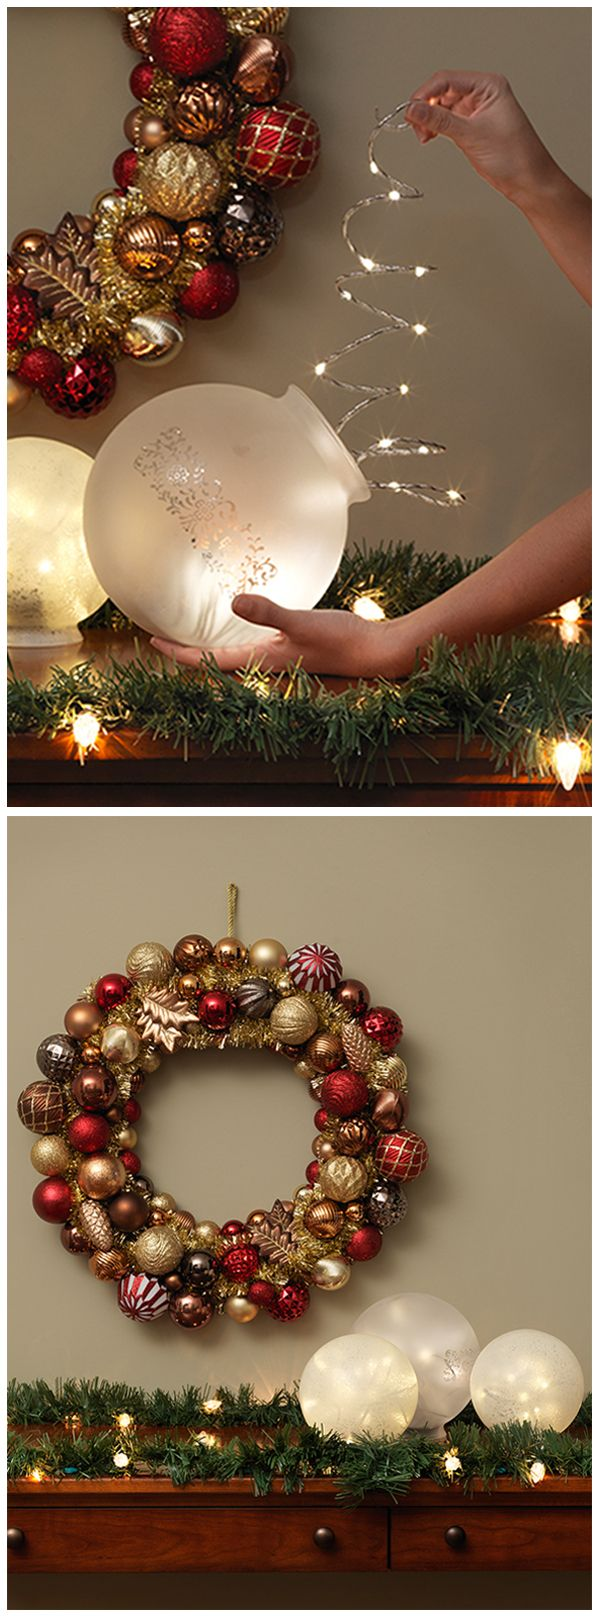 We Created These Luminous Christmas Table Decorations Using